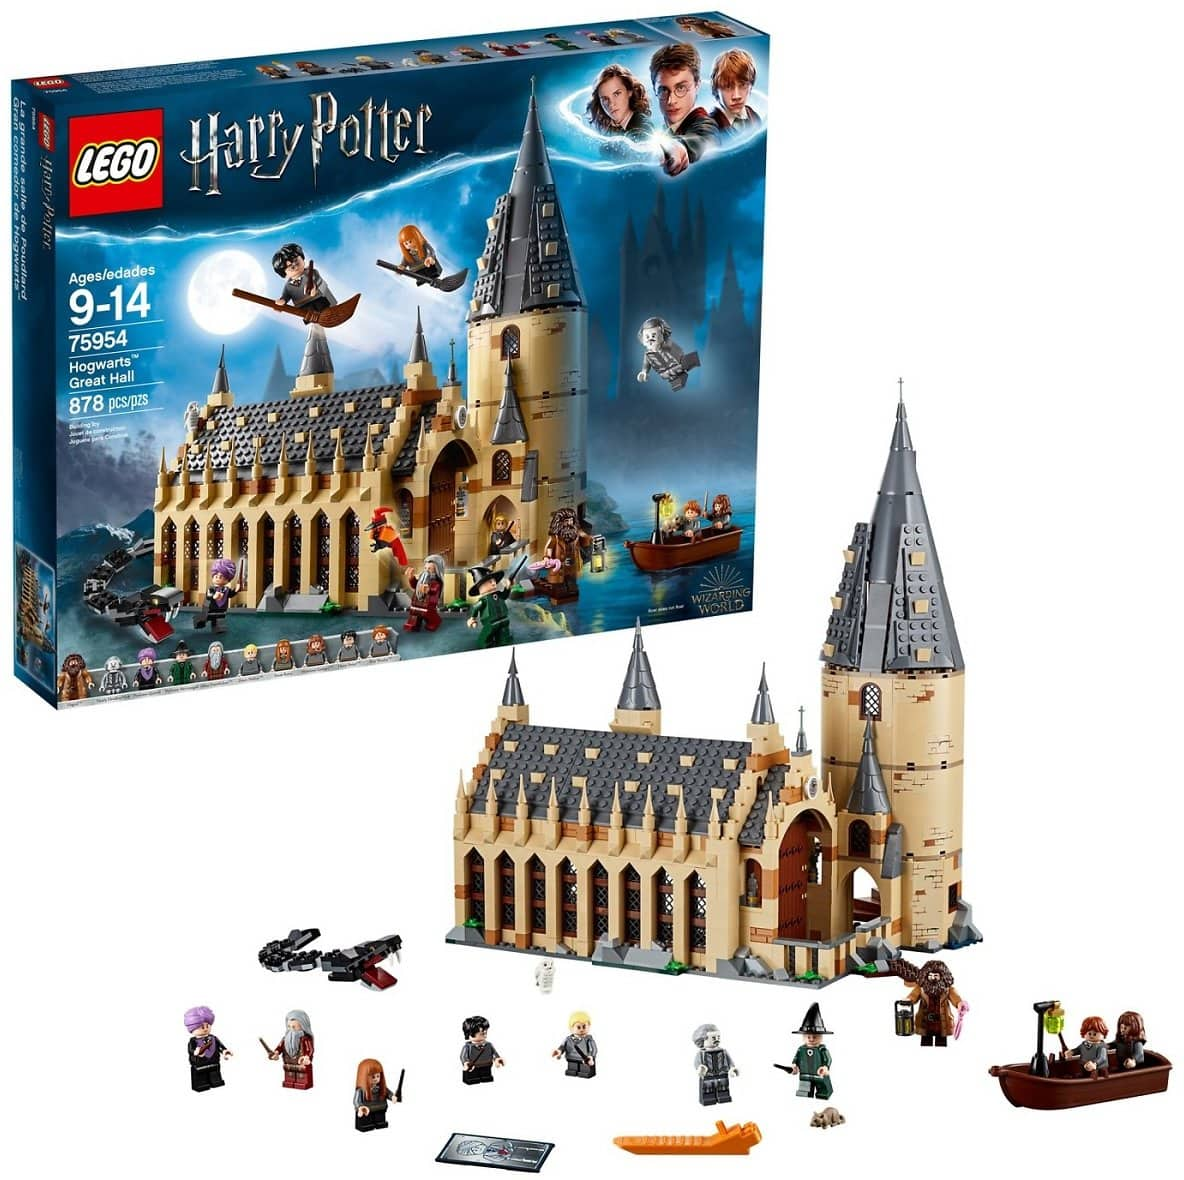 Shipped + $10 Target Gift Card w/ LEGO Harry Potter Hogwarts Great Hall 75954 $99.99